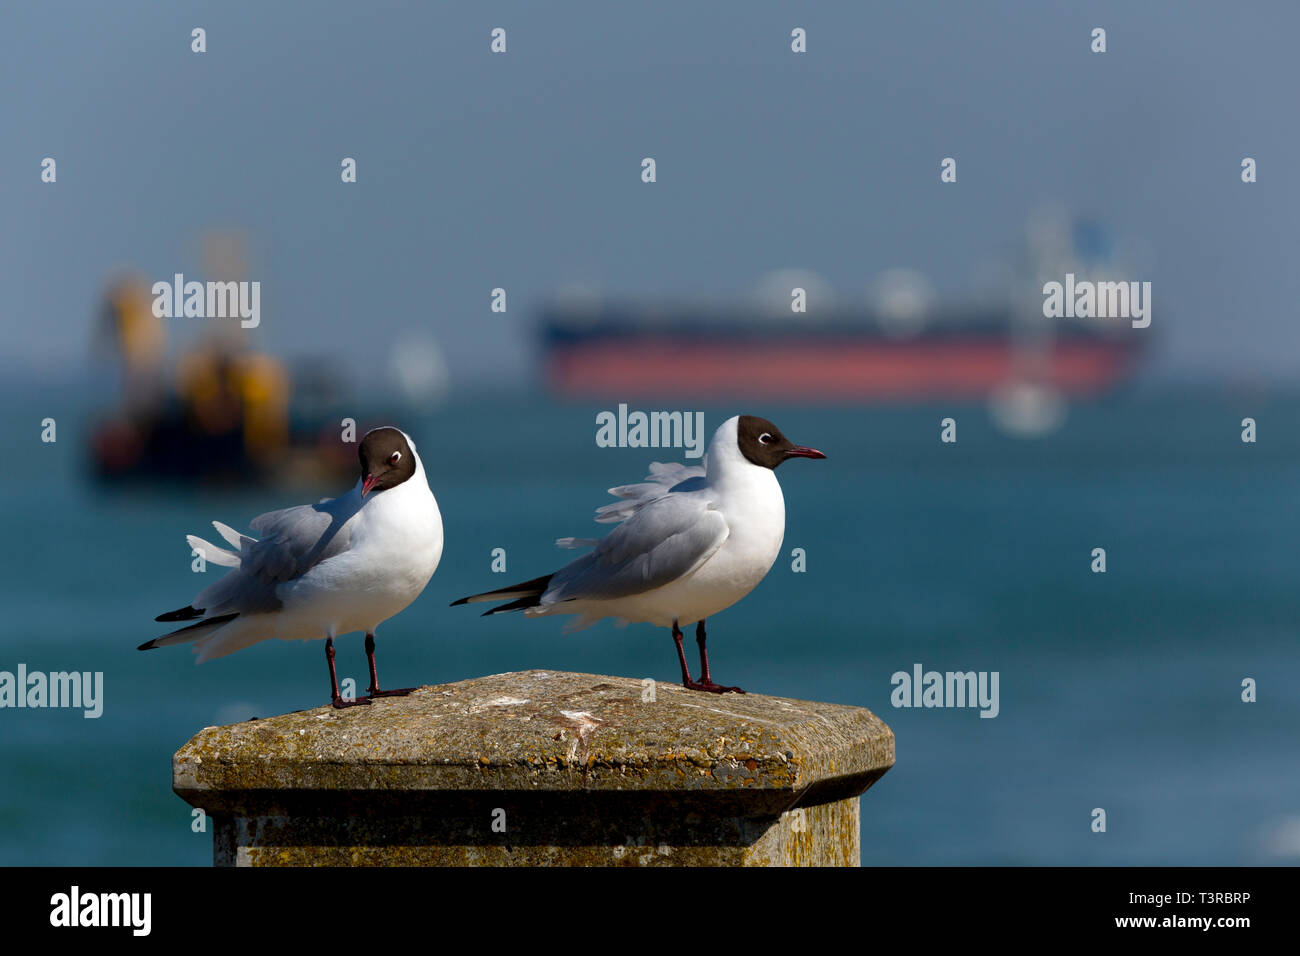 Seagulls,perched,on,seawall,Southampton,services,port,towing,Tanker,Oil,Refinery,Fawley,The Solent,fossil,global,change,warming,tow,assistance,Tug, - Stock Image